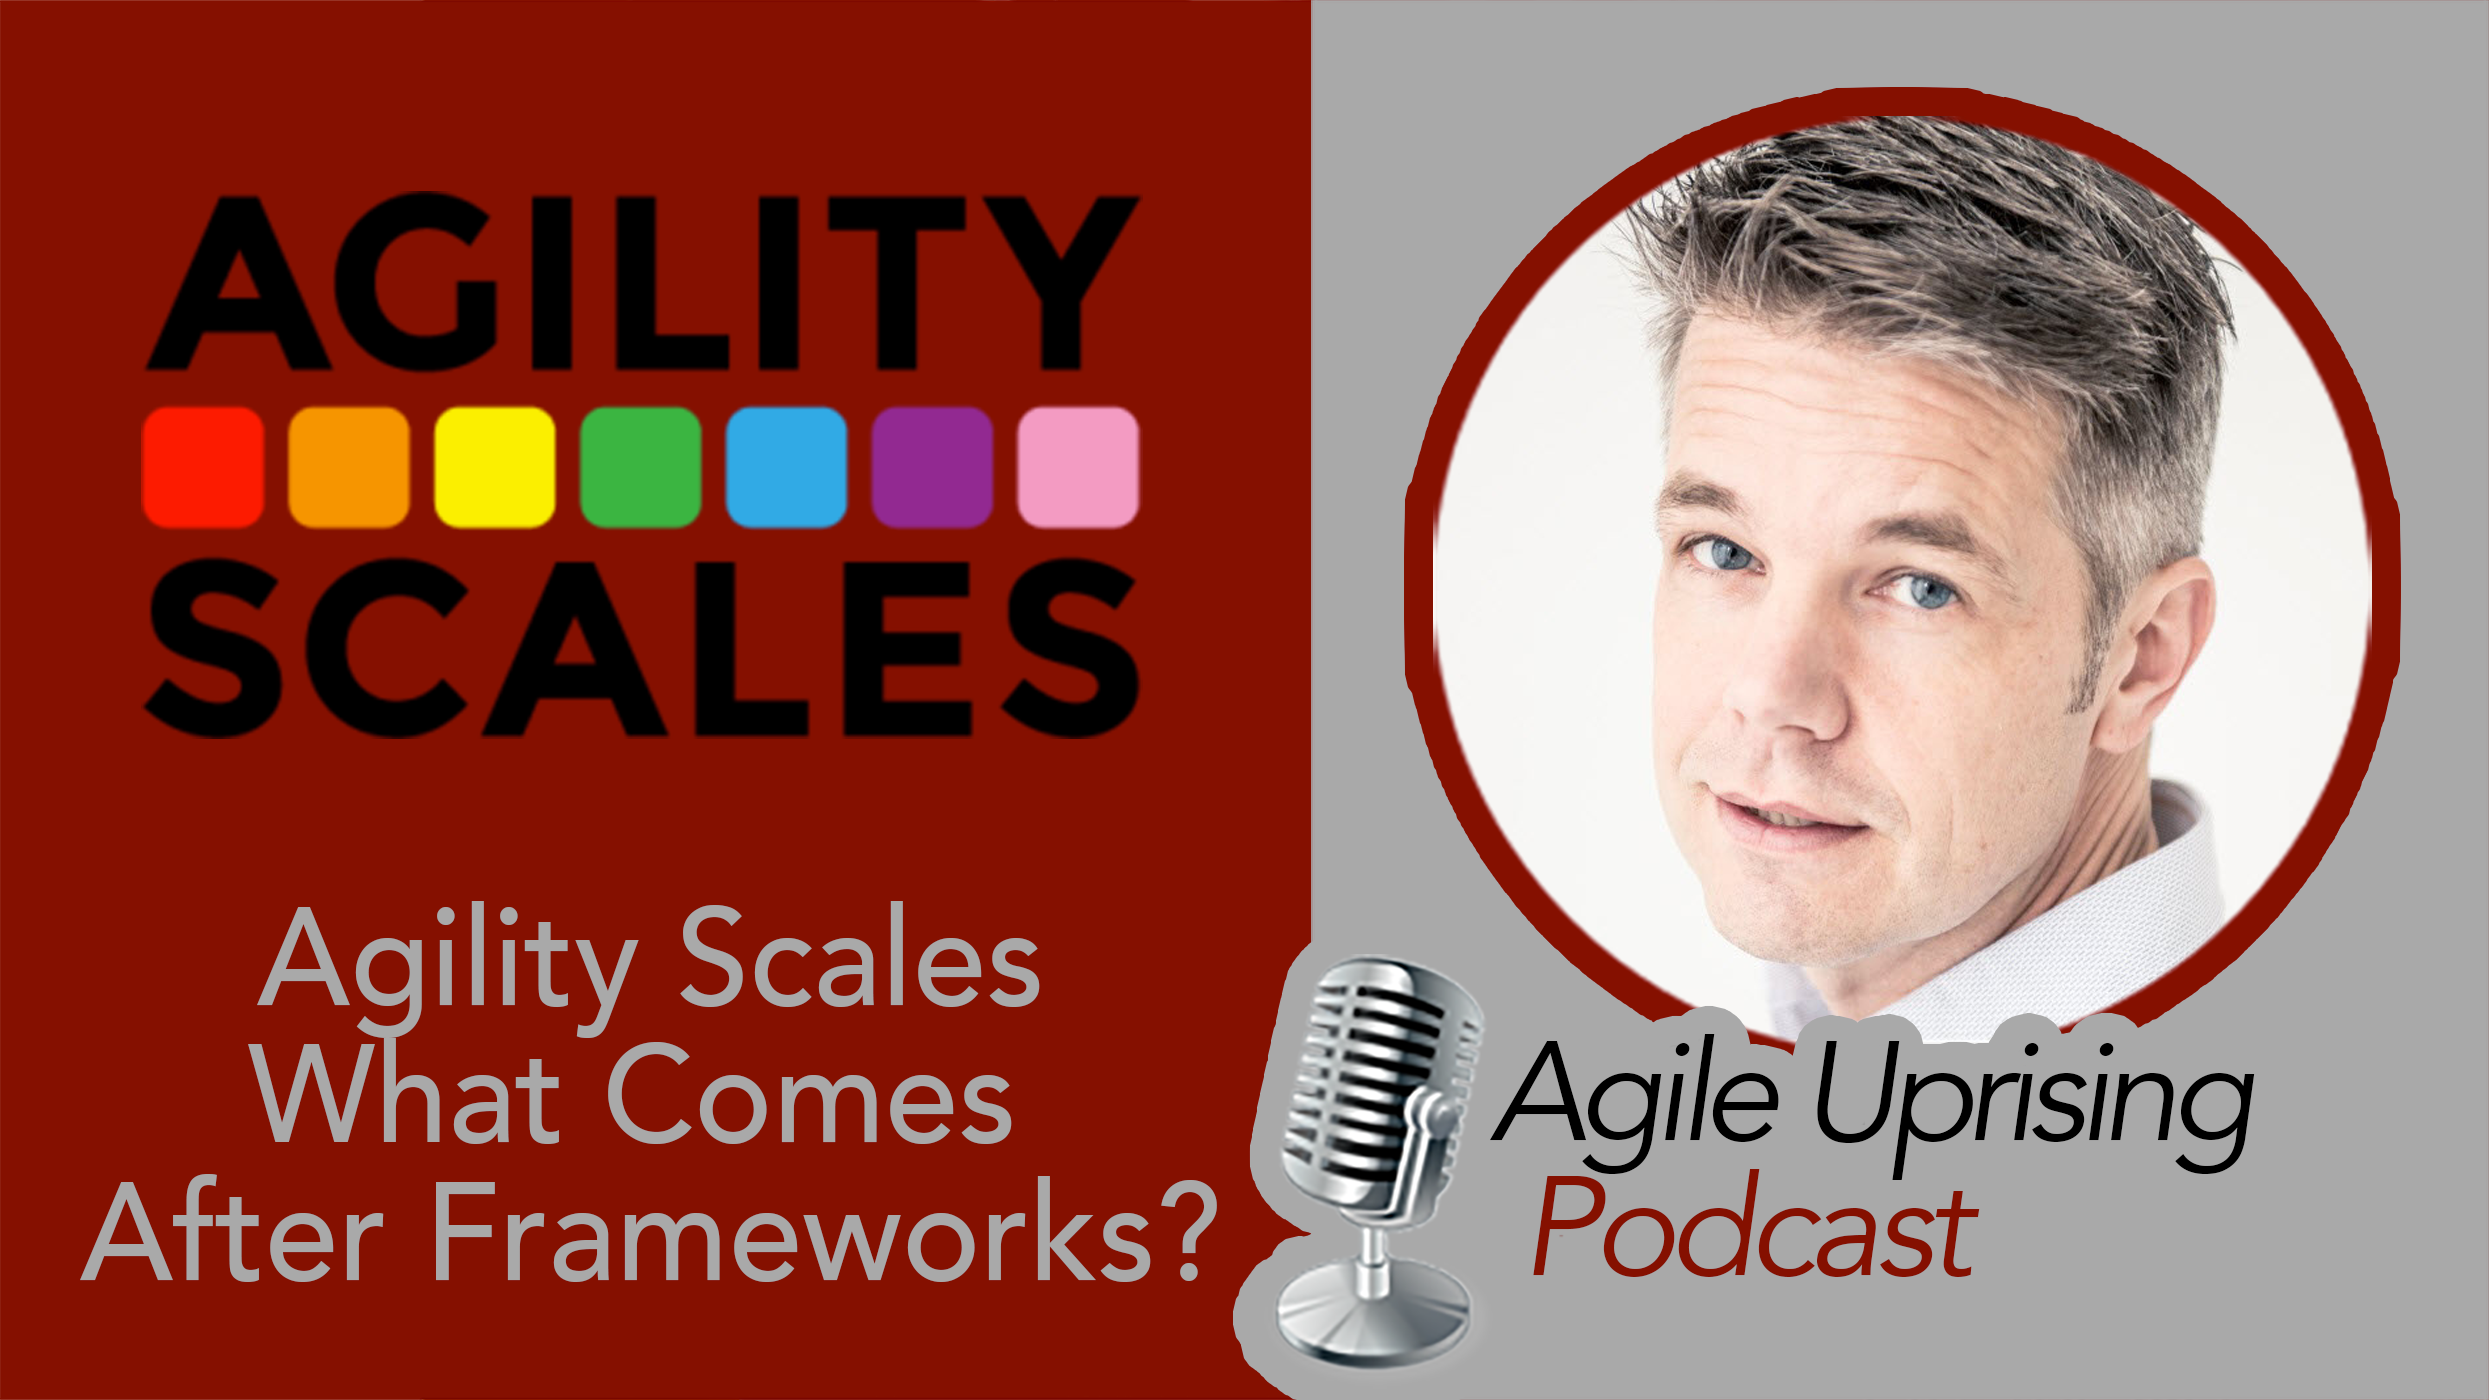 Agility Scales